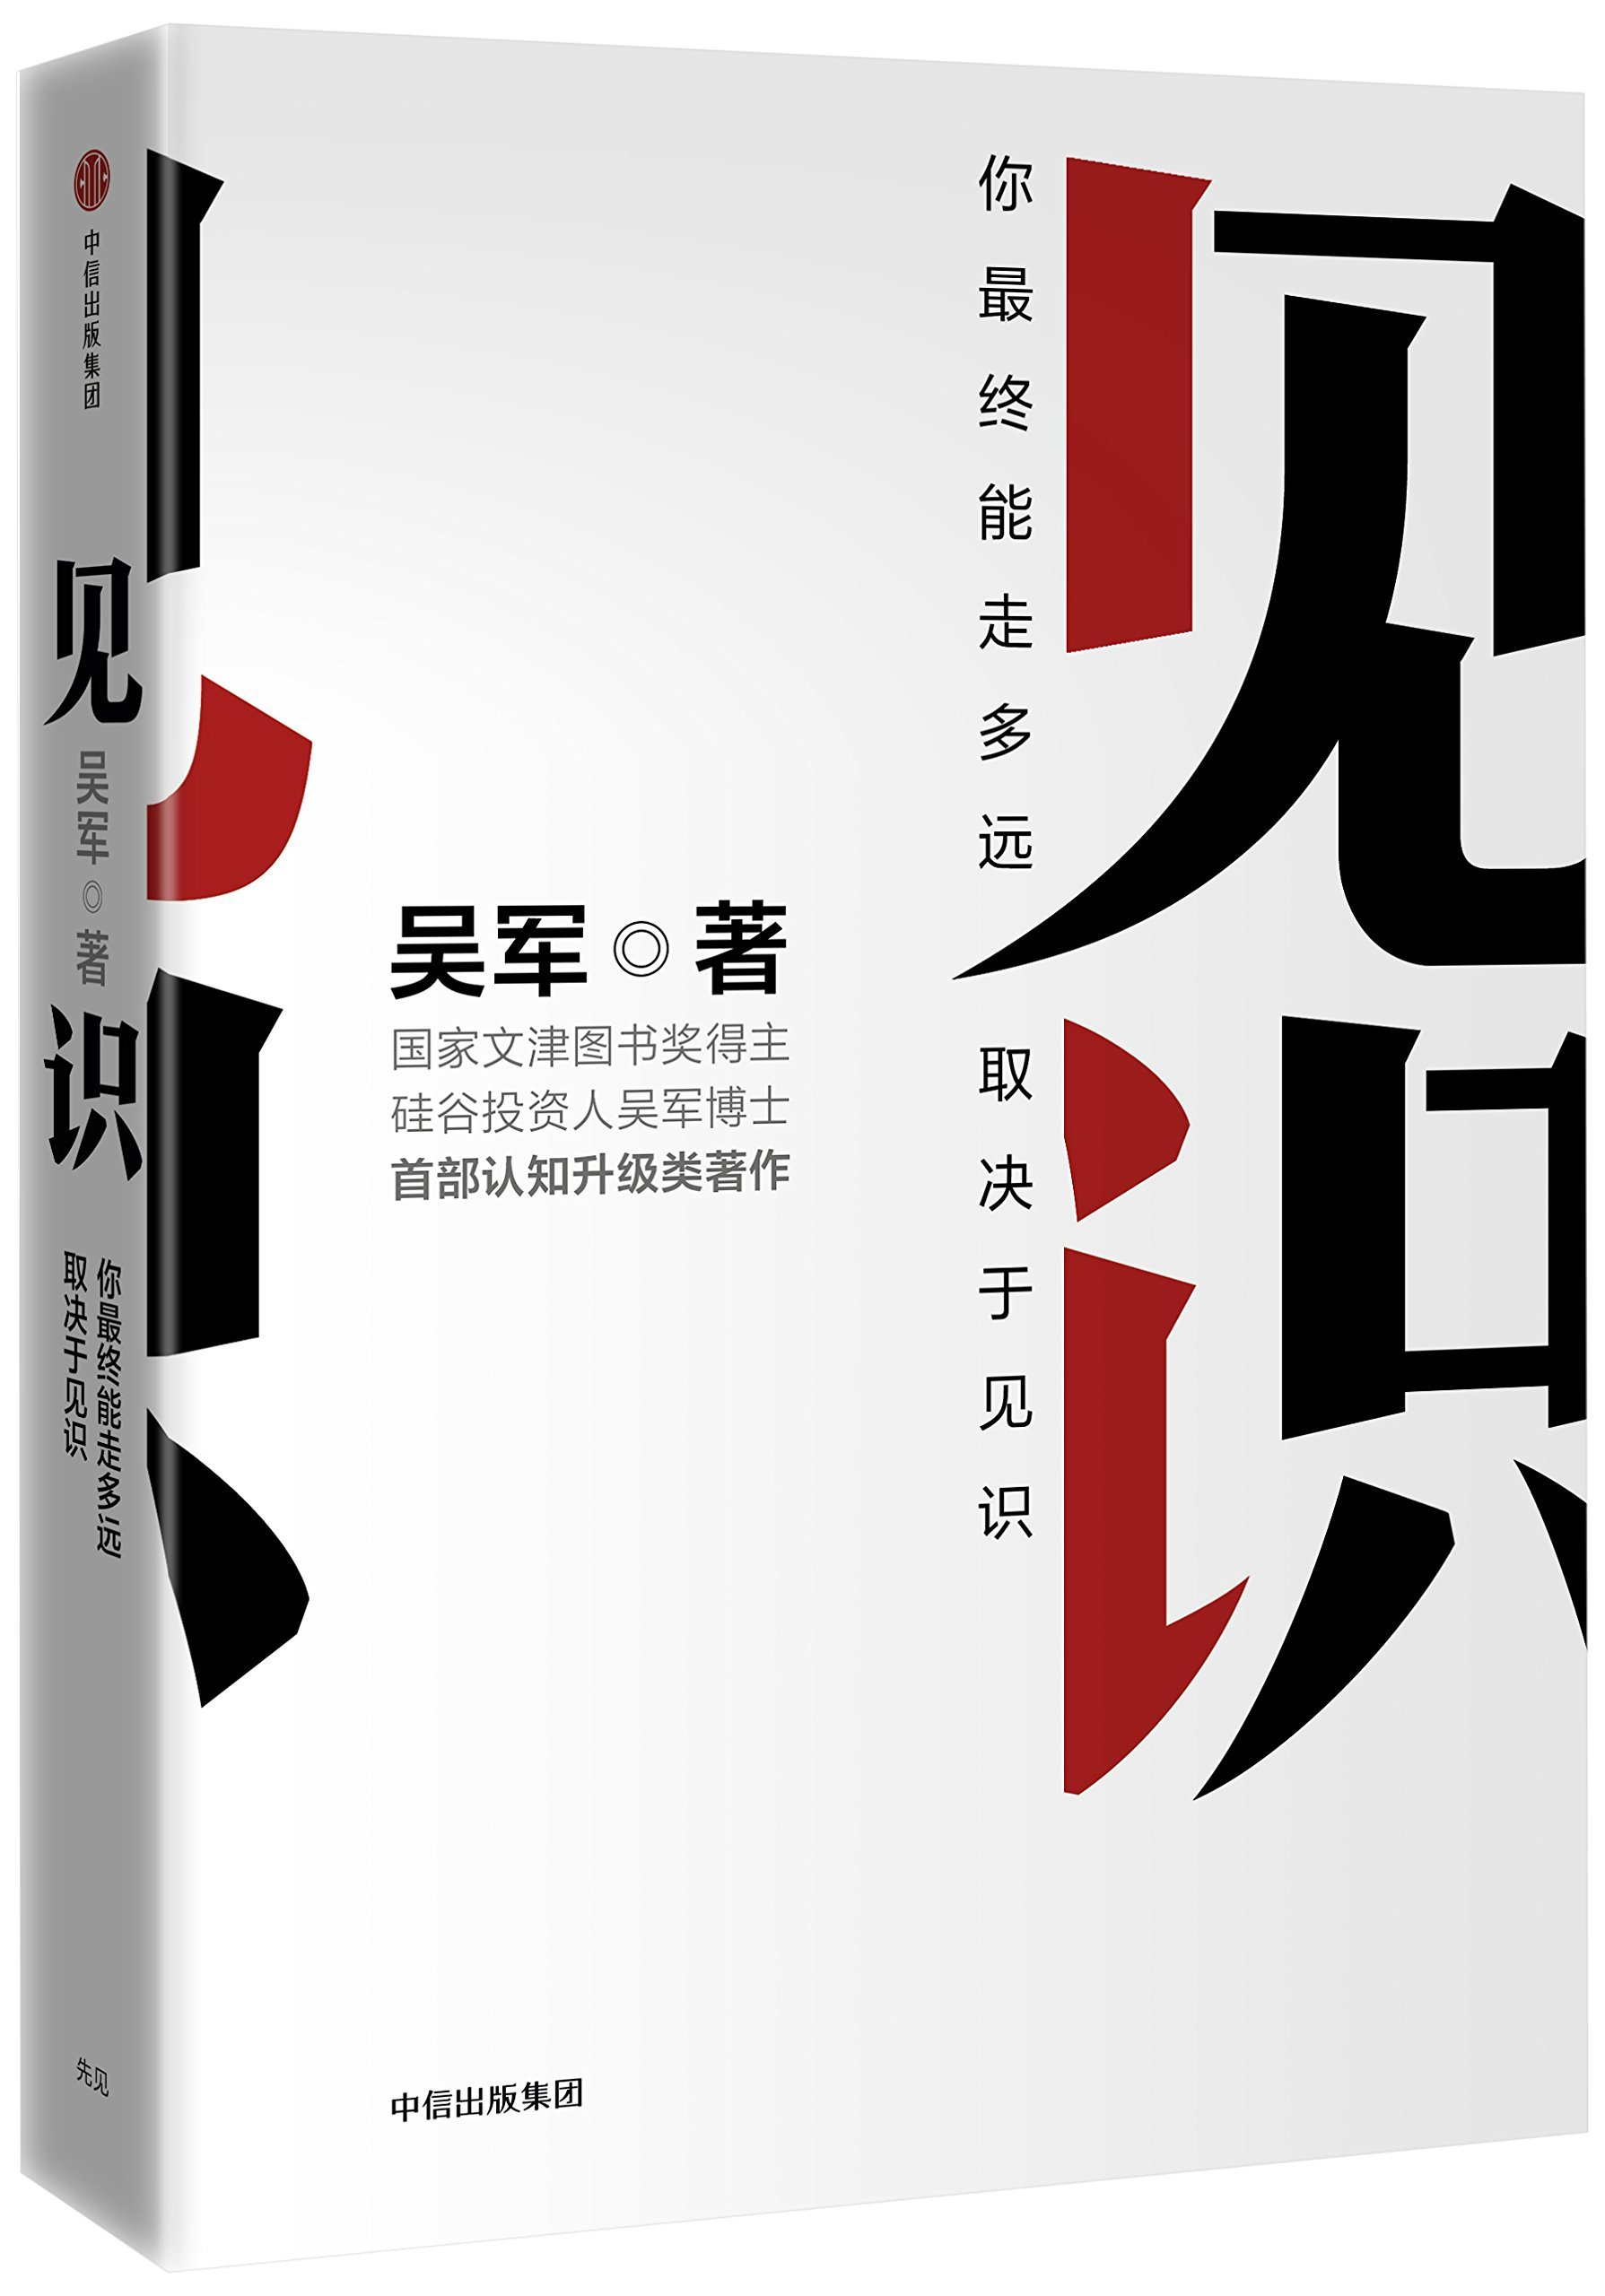 Vision (Chinese Edition)